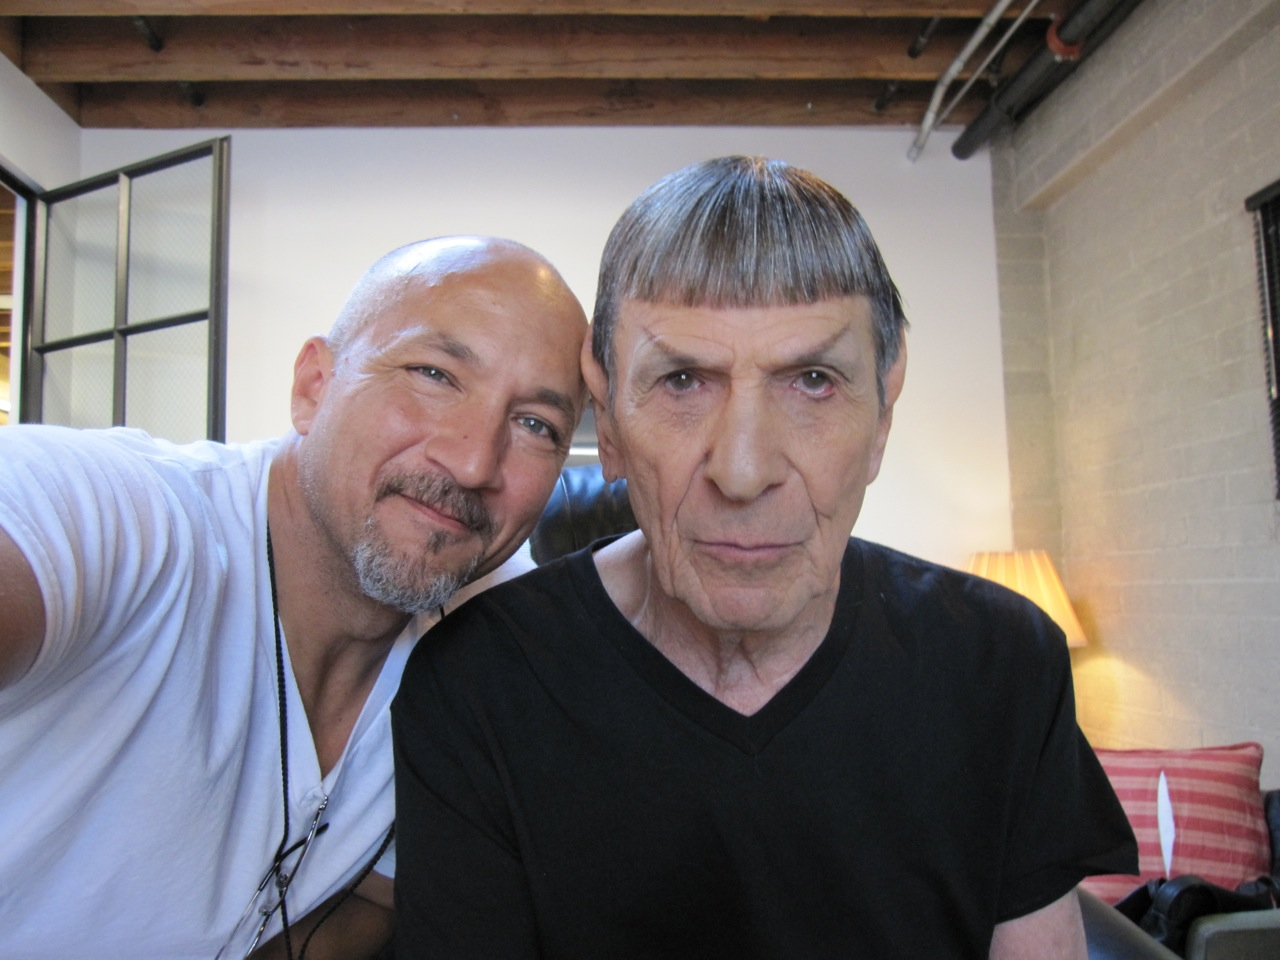 david anderson and leonard nimoy - star trek: into darkness